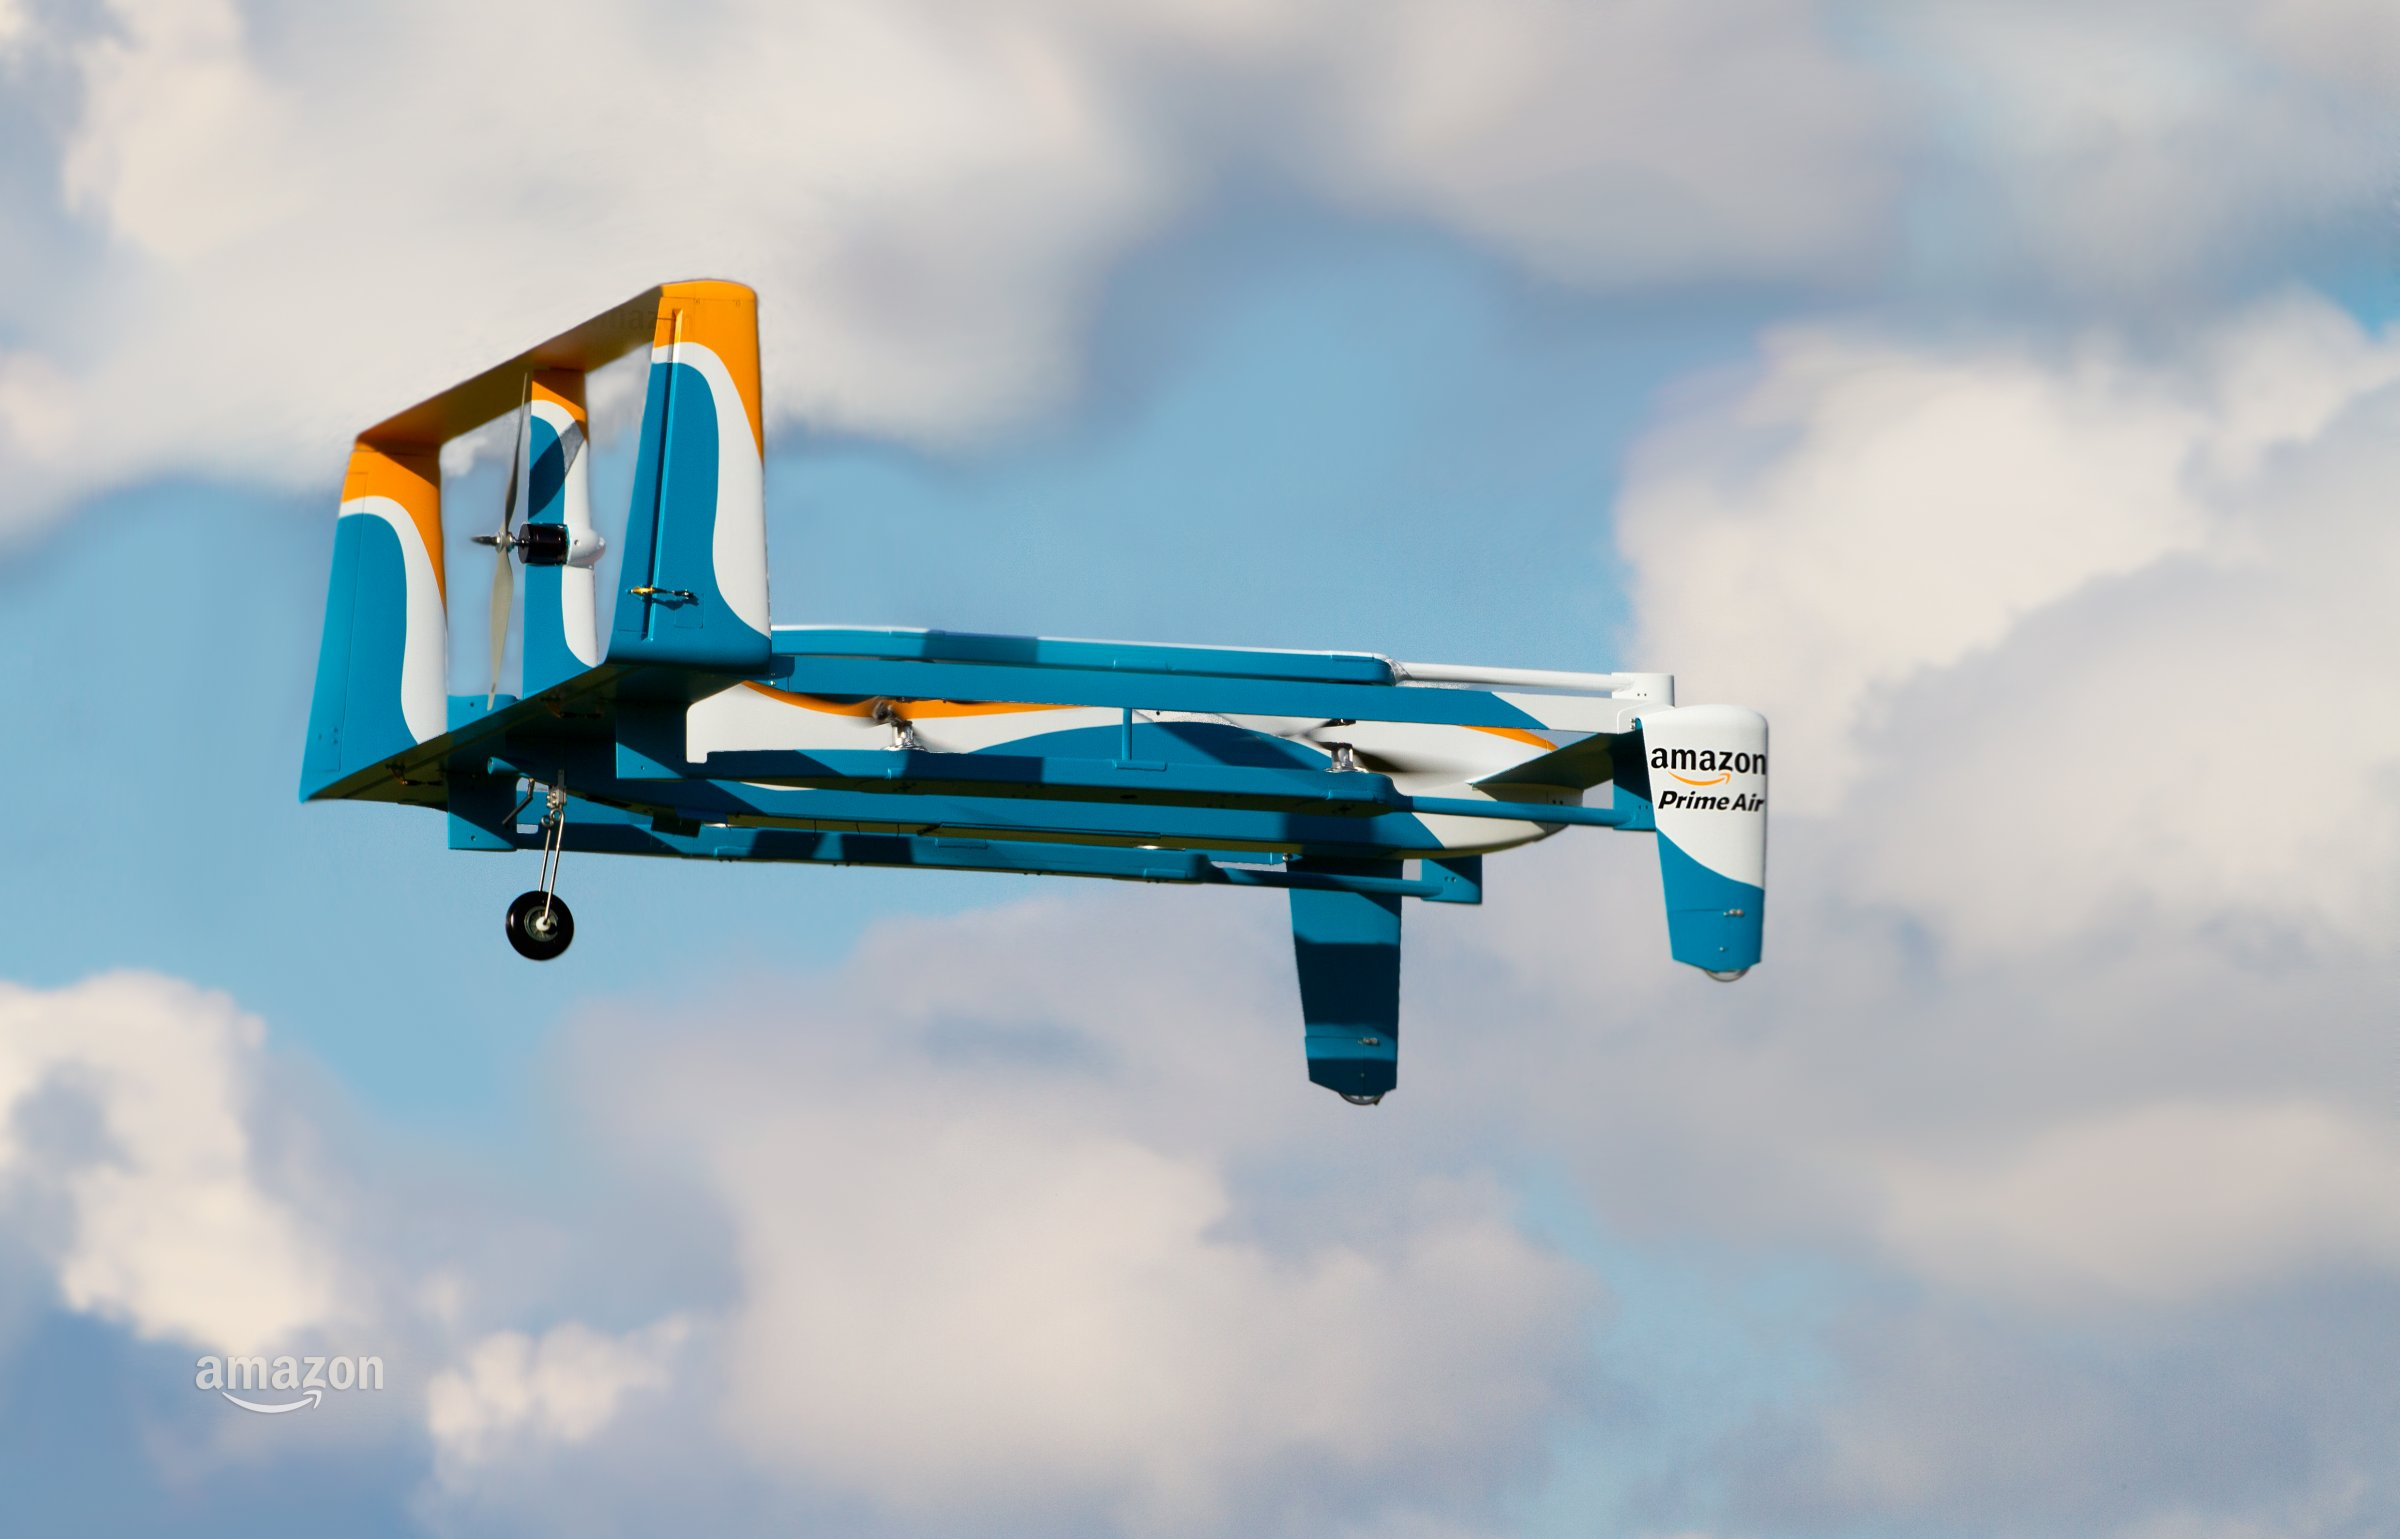 Cambridge's Amazon is Home to a Delivery Drone Lab